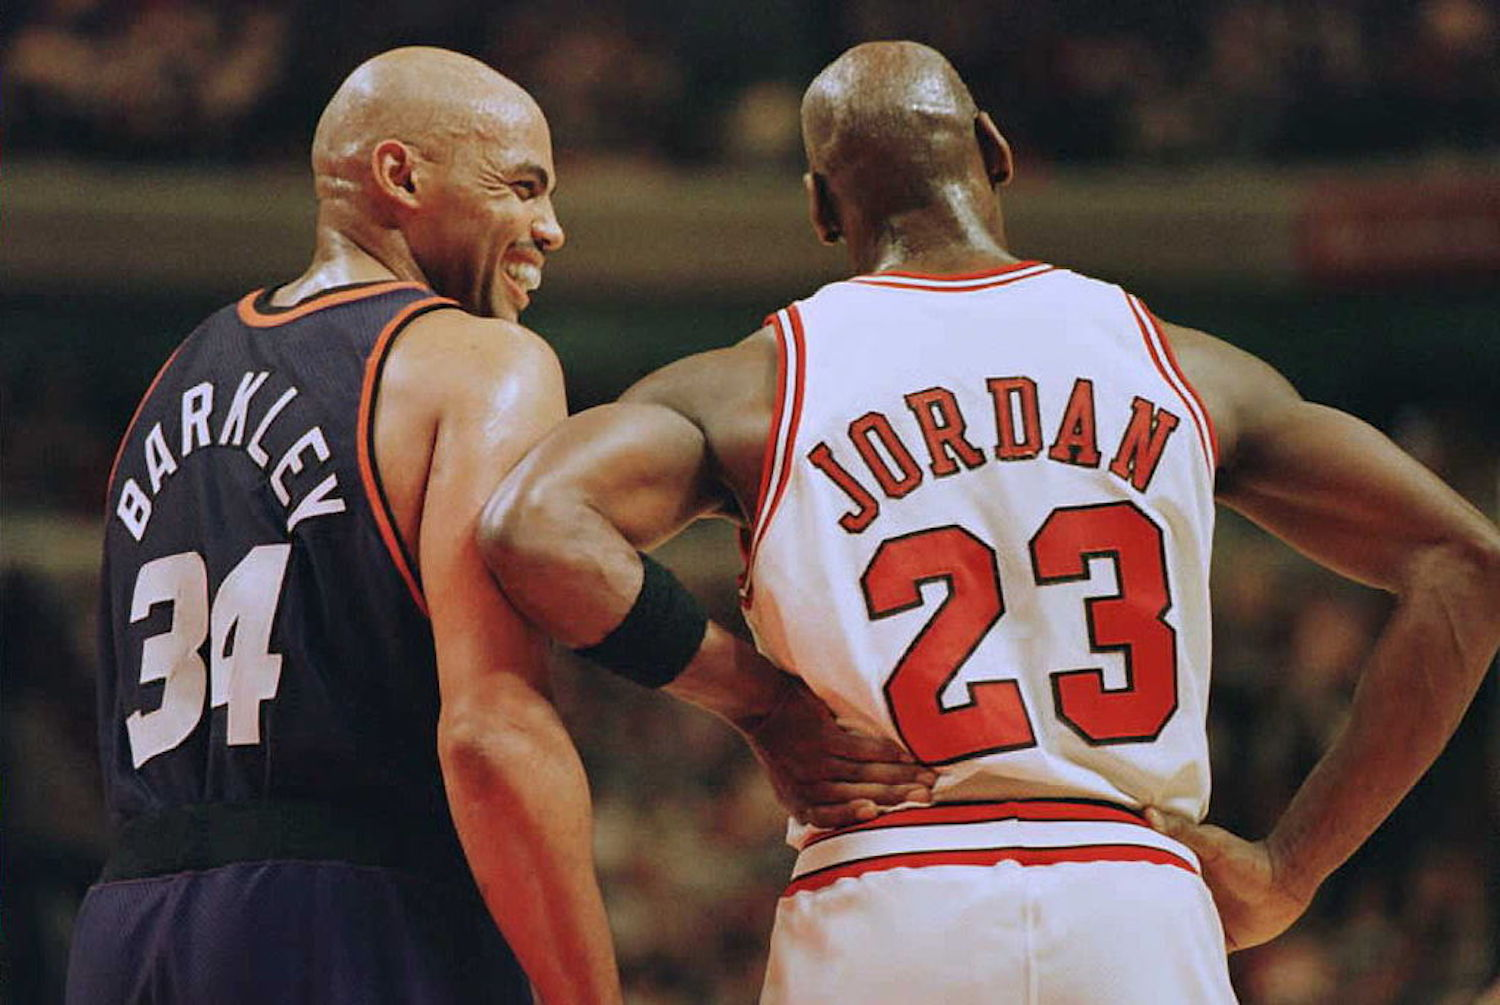 Charles Barkley recently gave his pick for the best 1-on-1 player in NBA history, and it's not Michael Jordan or Kobe Bryant.